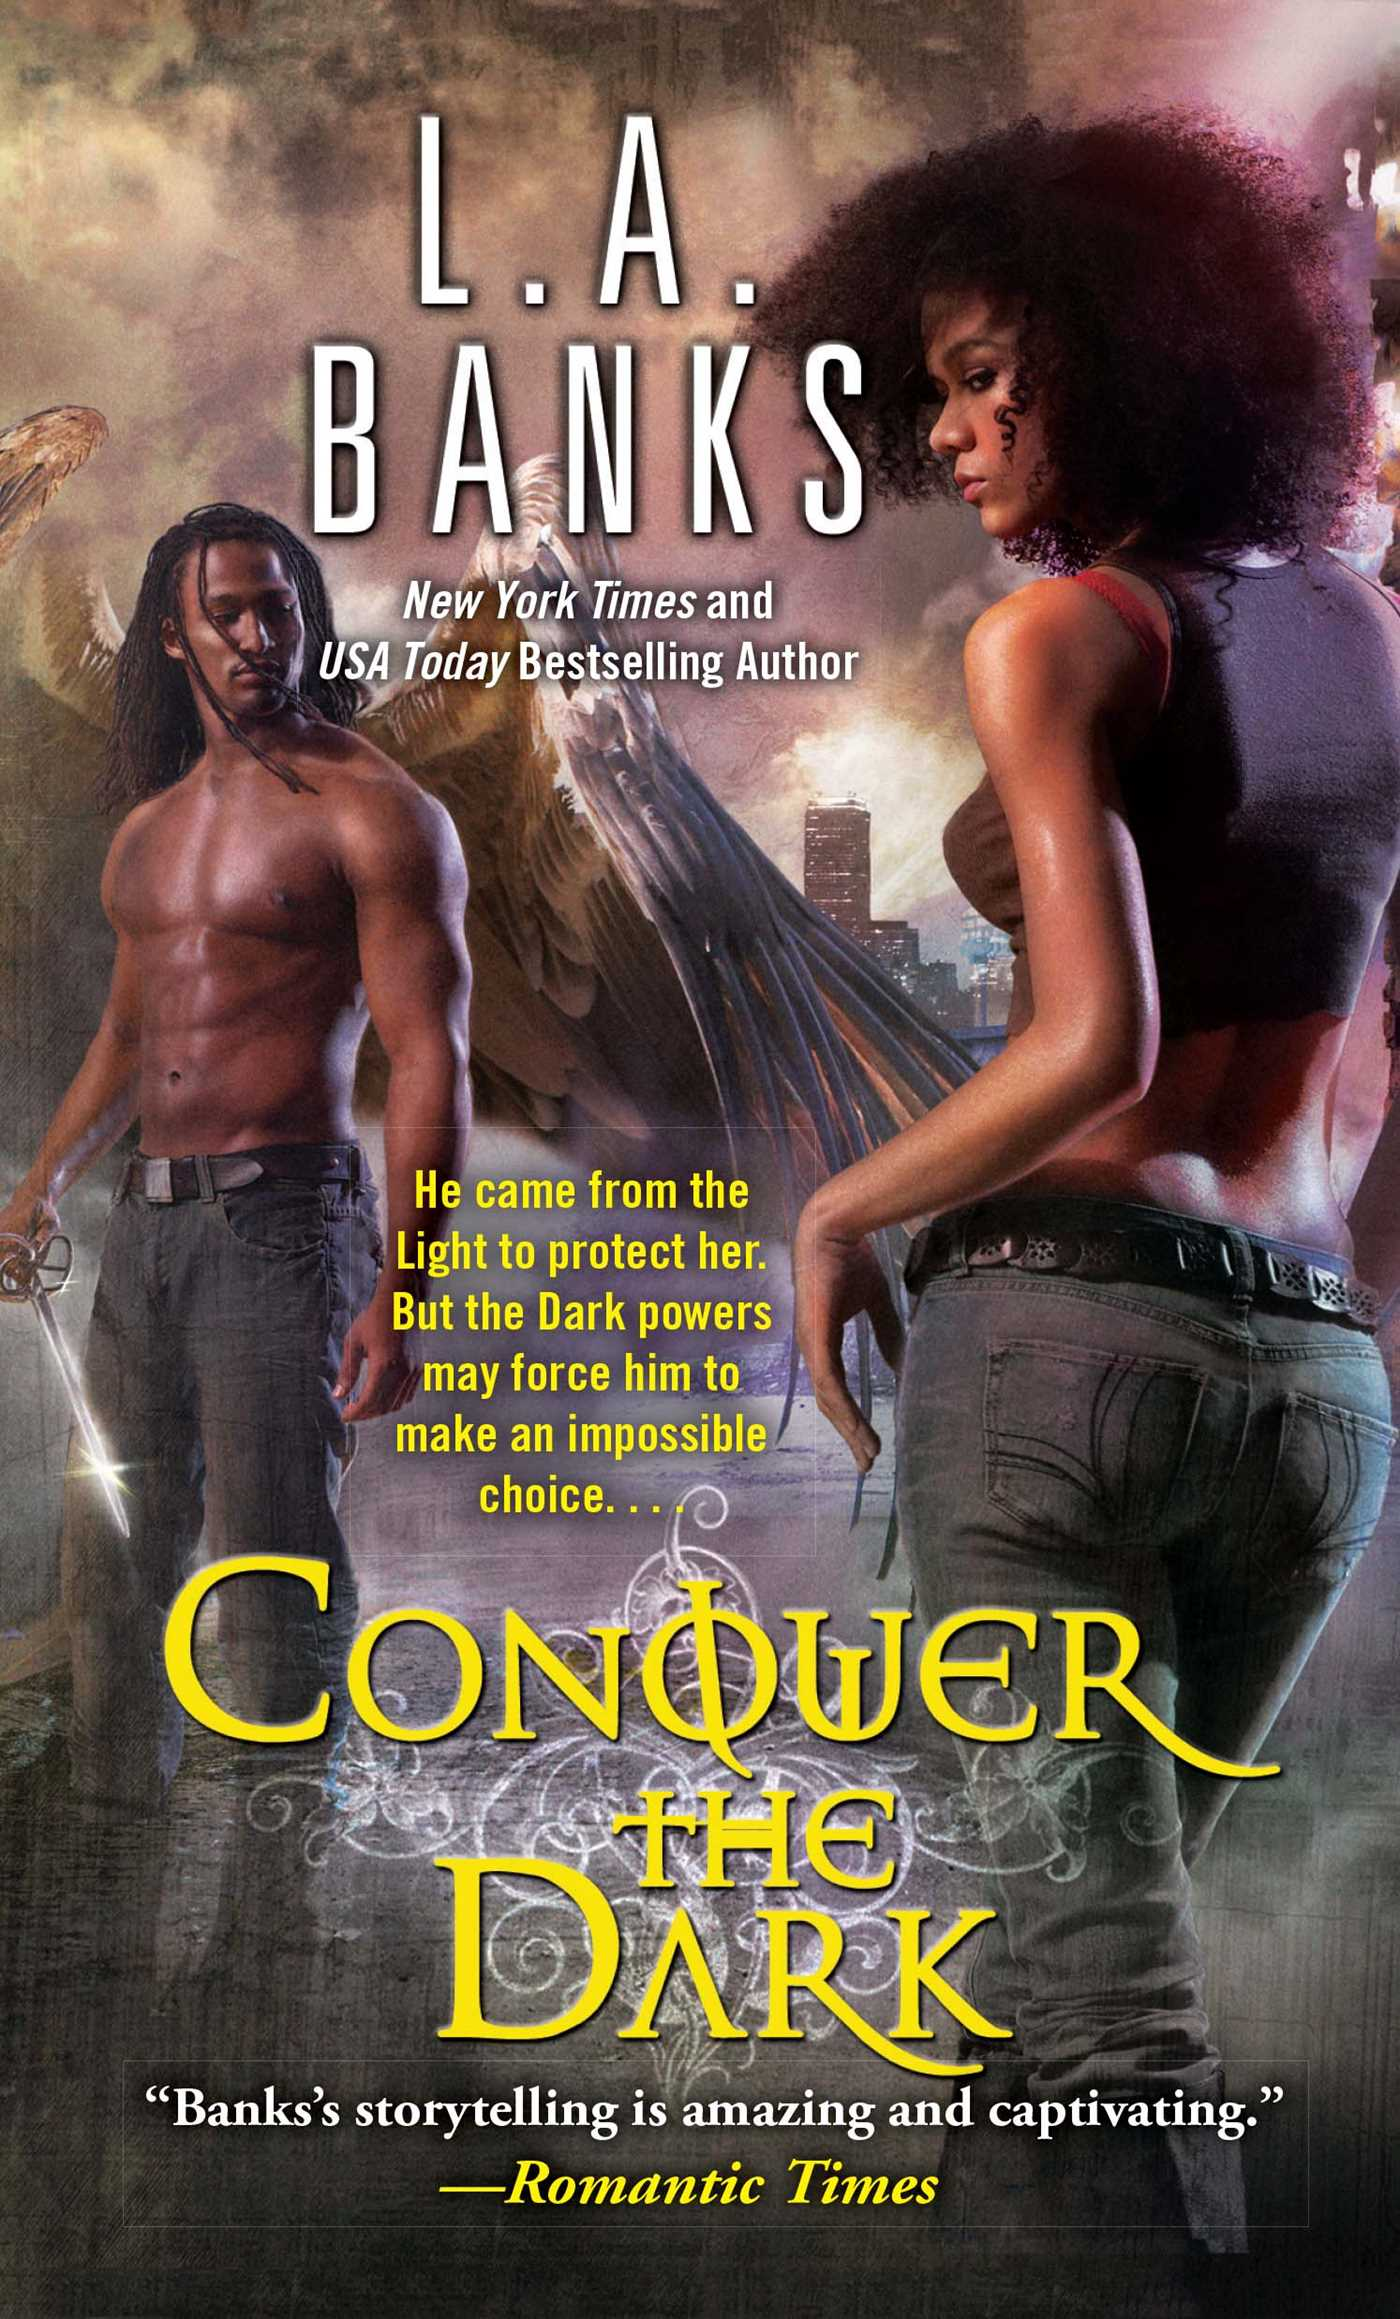 Conquer-the-dark-9781451608984_hr